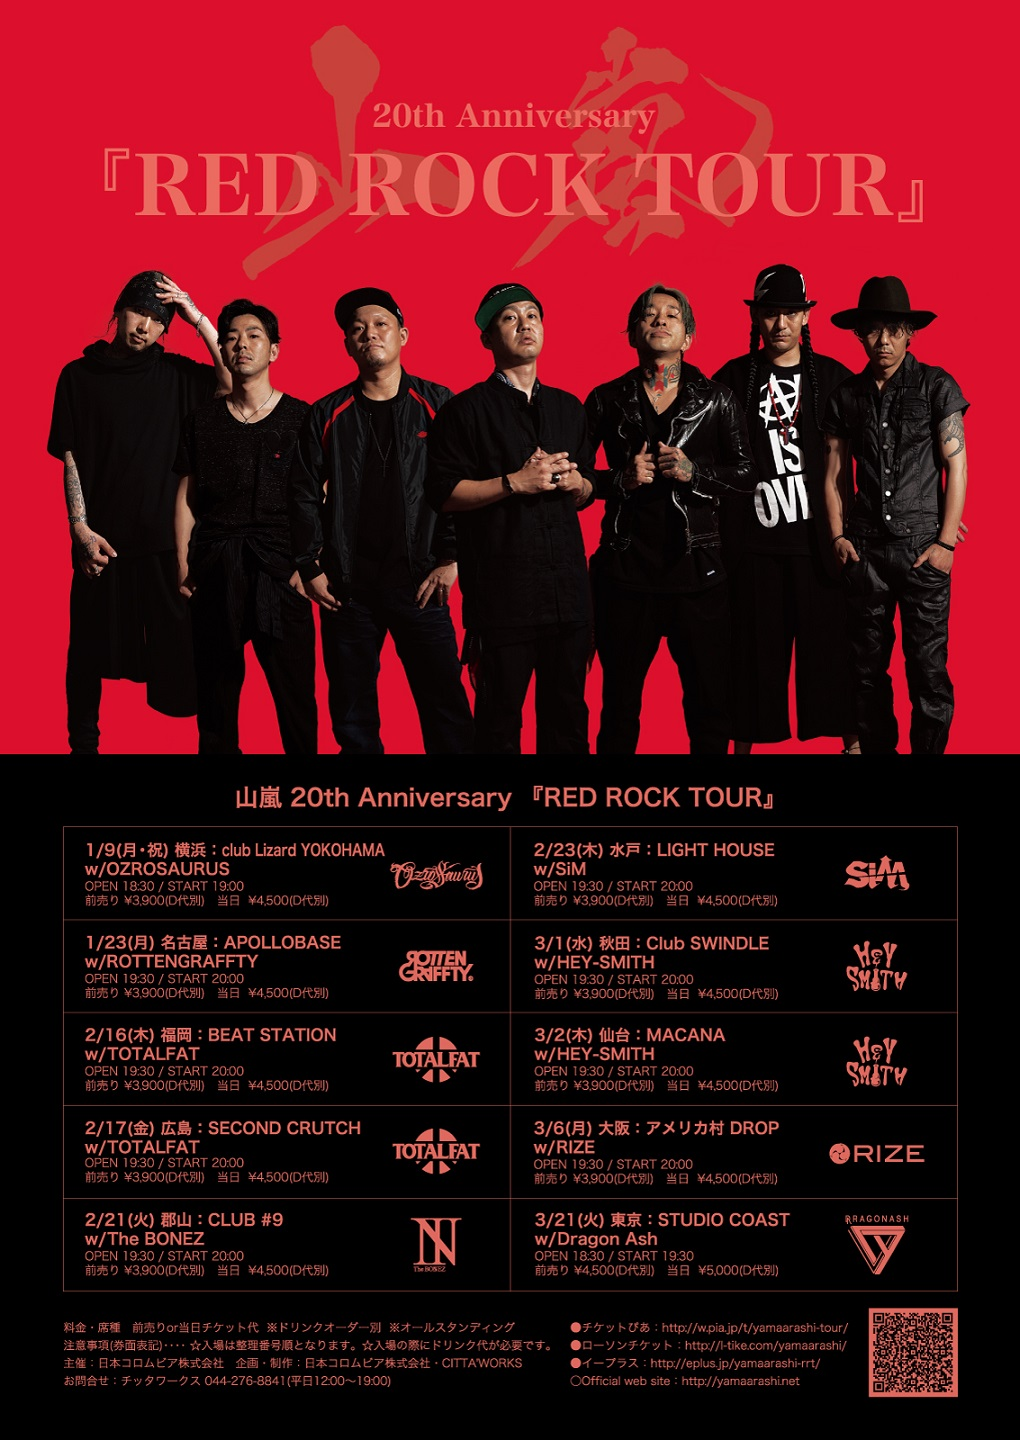 山嵐 20th Anniversary 『RED ROCK TOUR』 フライヤー